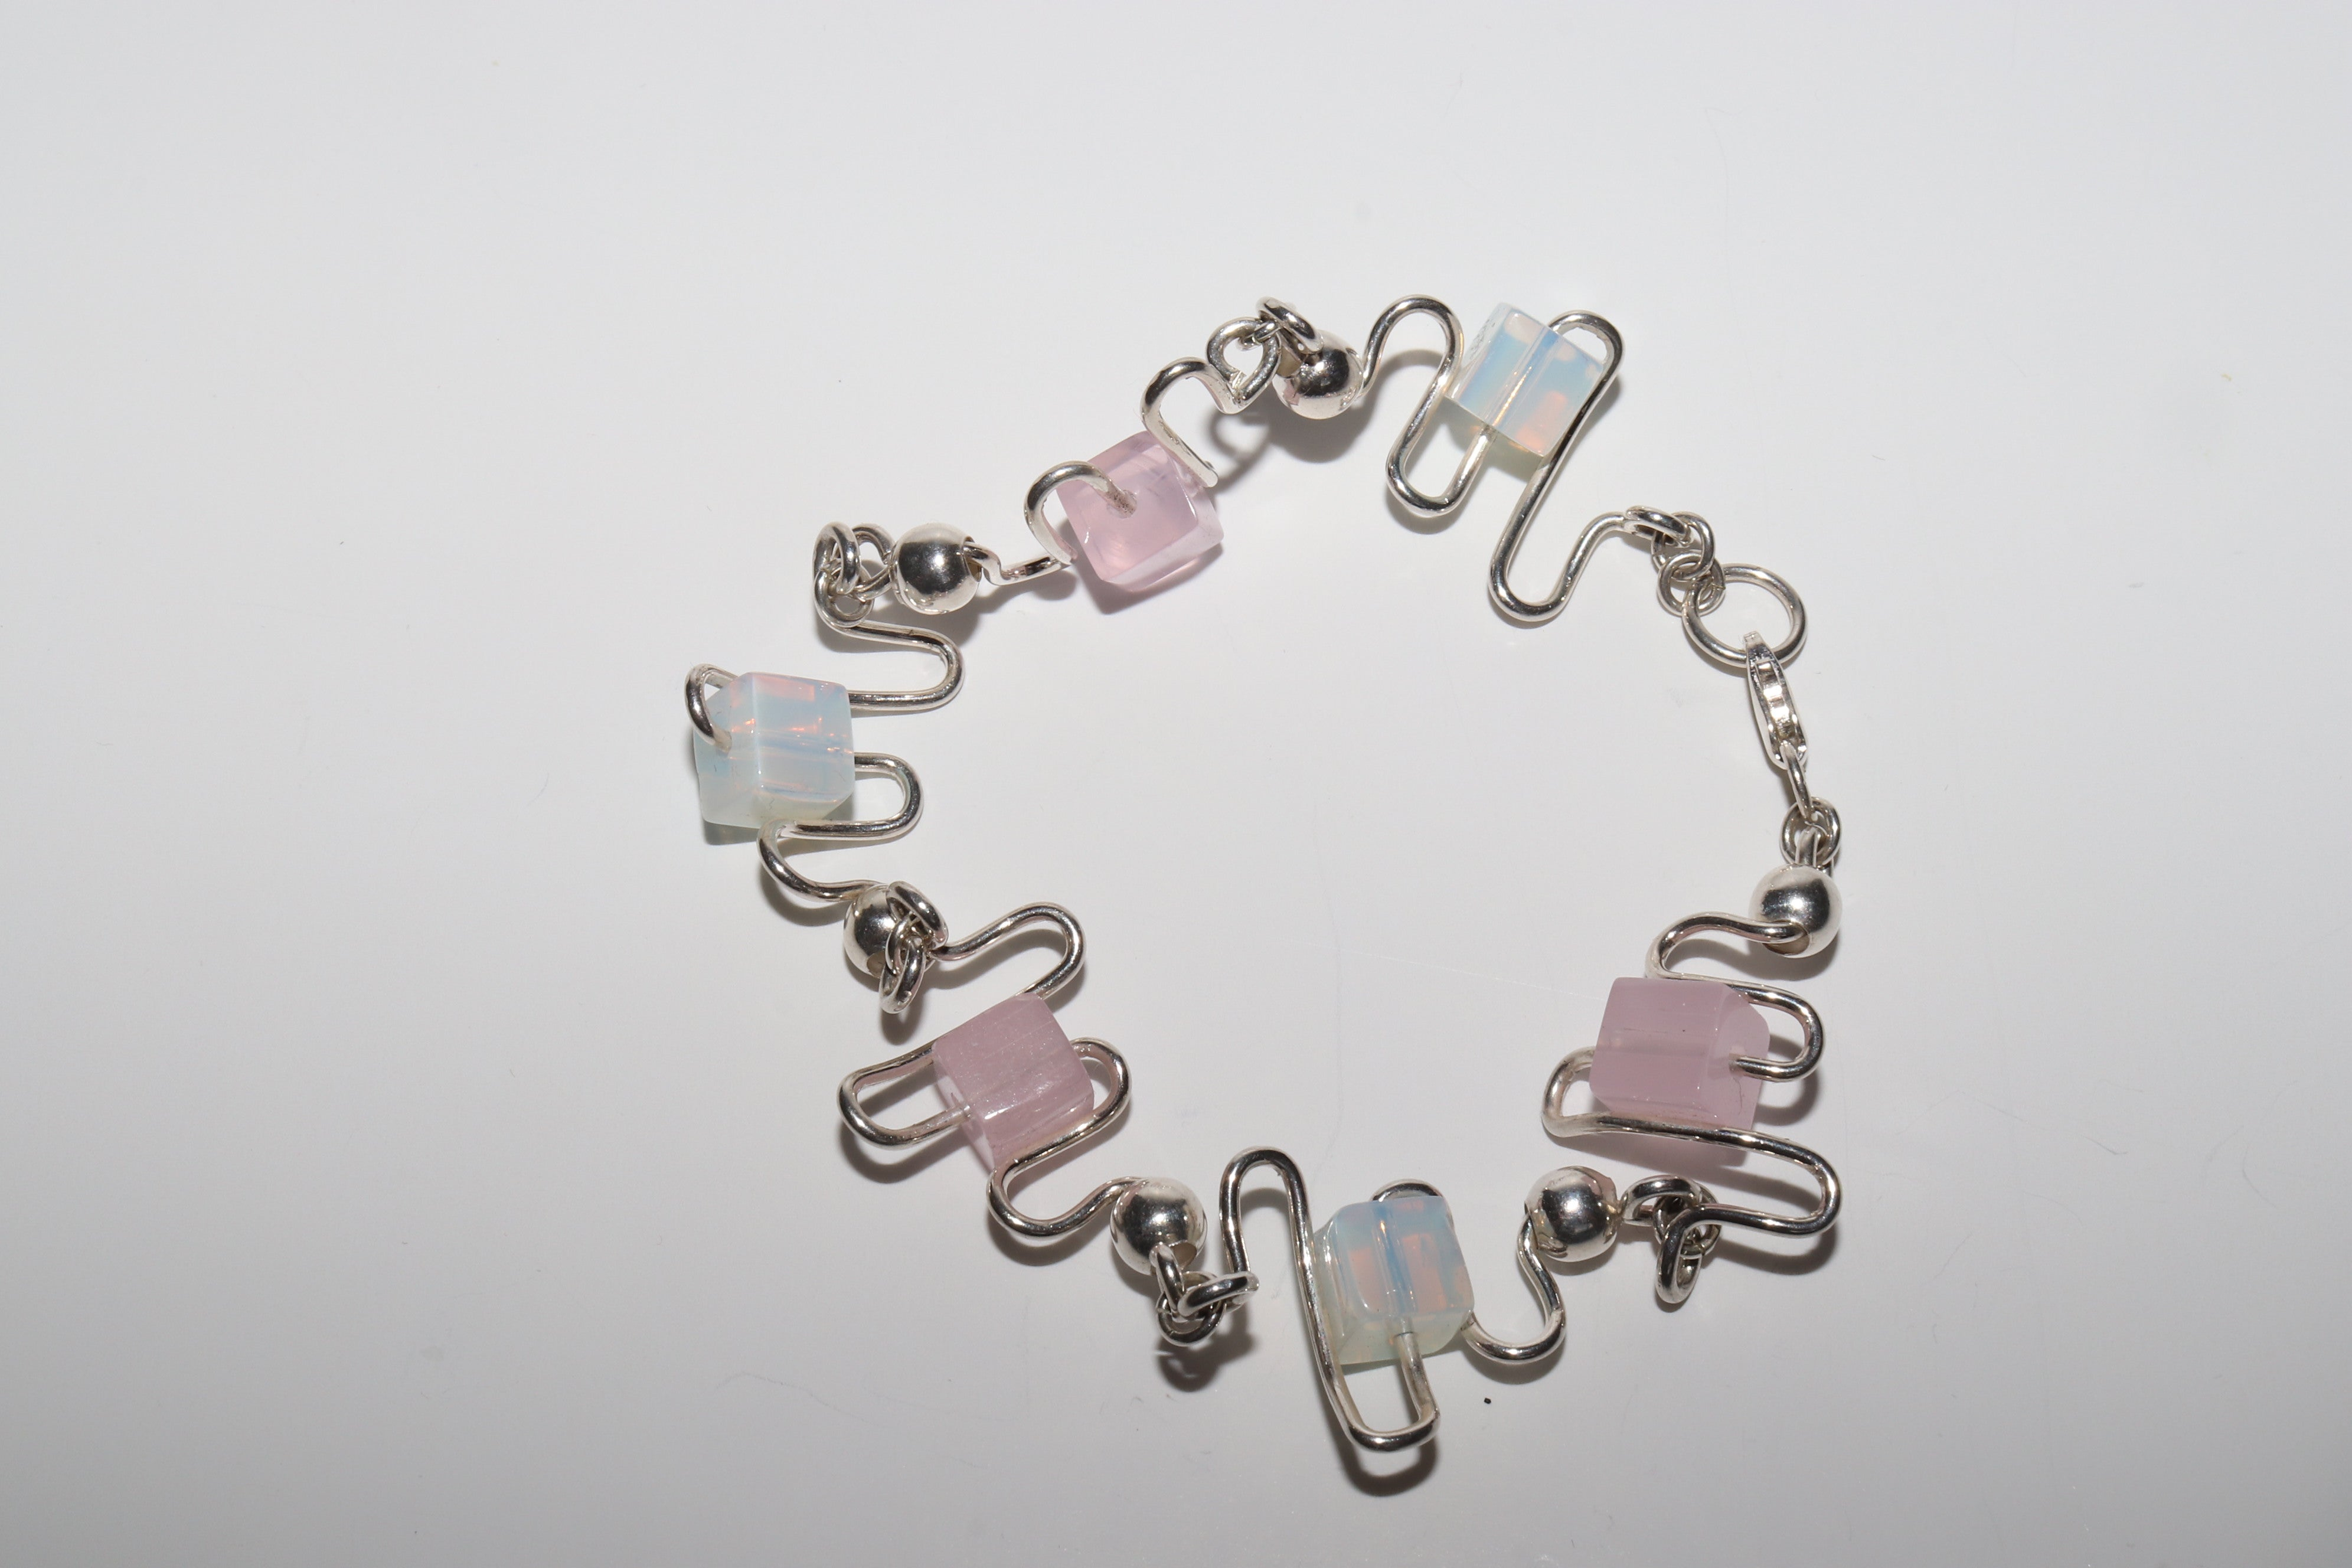 100% Sterling Silver .925 Fashion bracelet with zic zac design and Smithsonian stones Very Sexy Hot Sale!